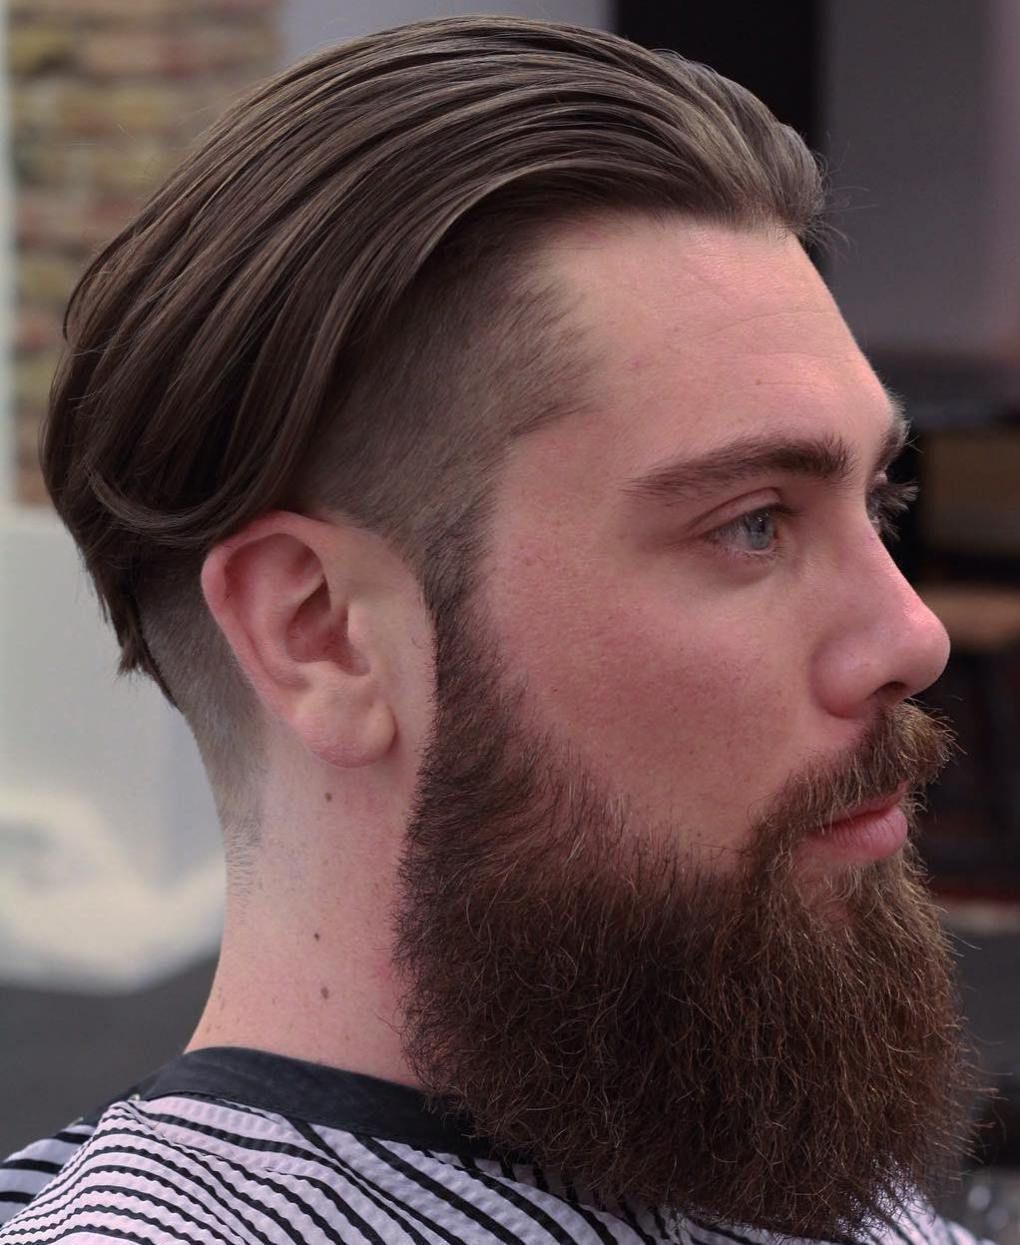 Boy hairstyle simple long top undercut with a full beard menshairstyles  mens